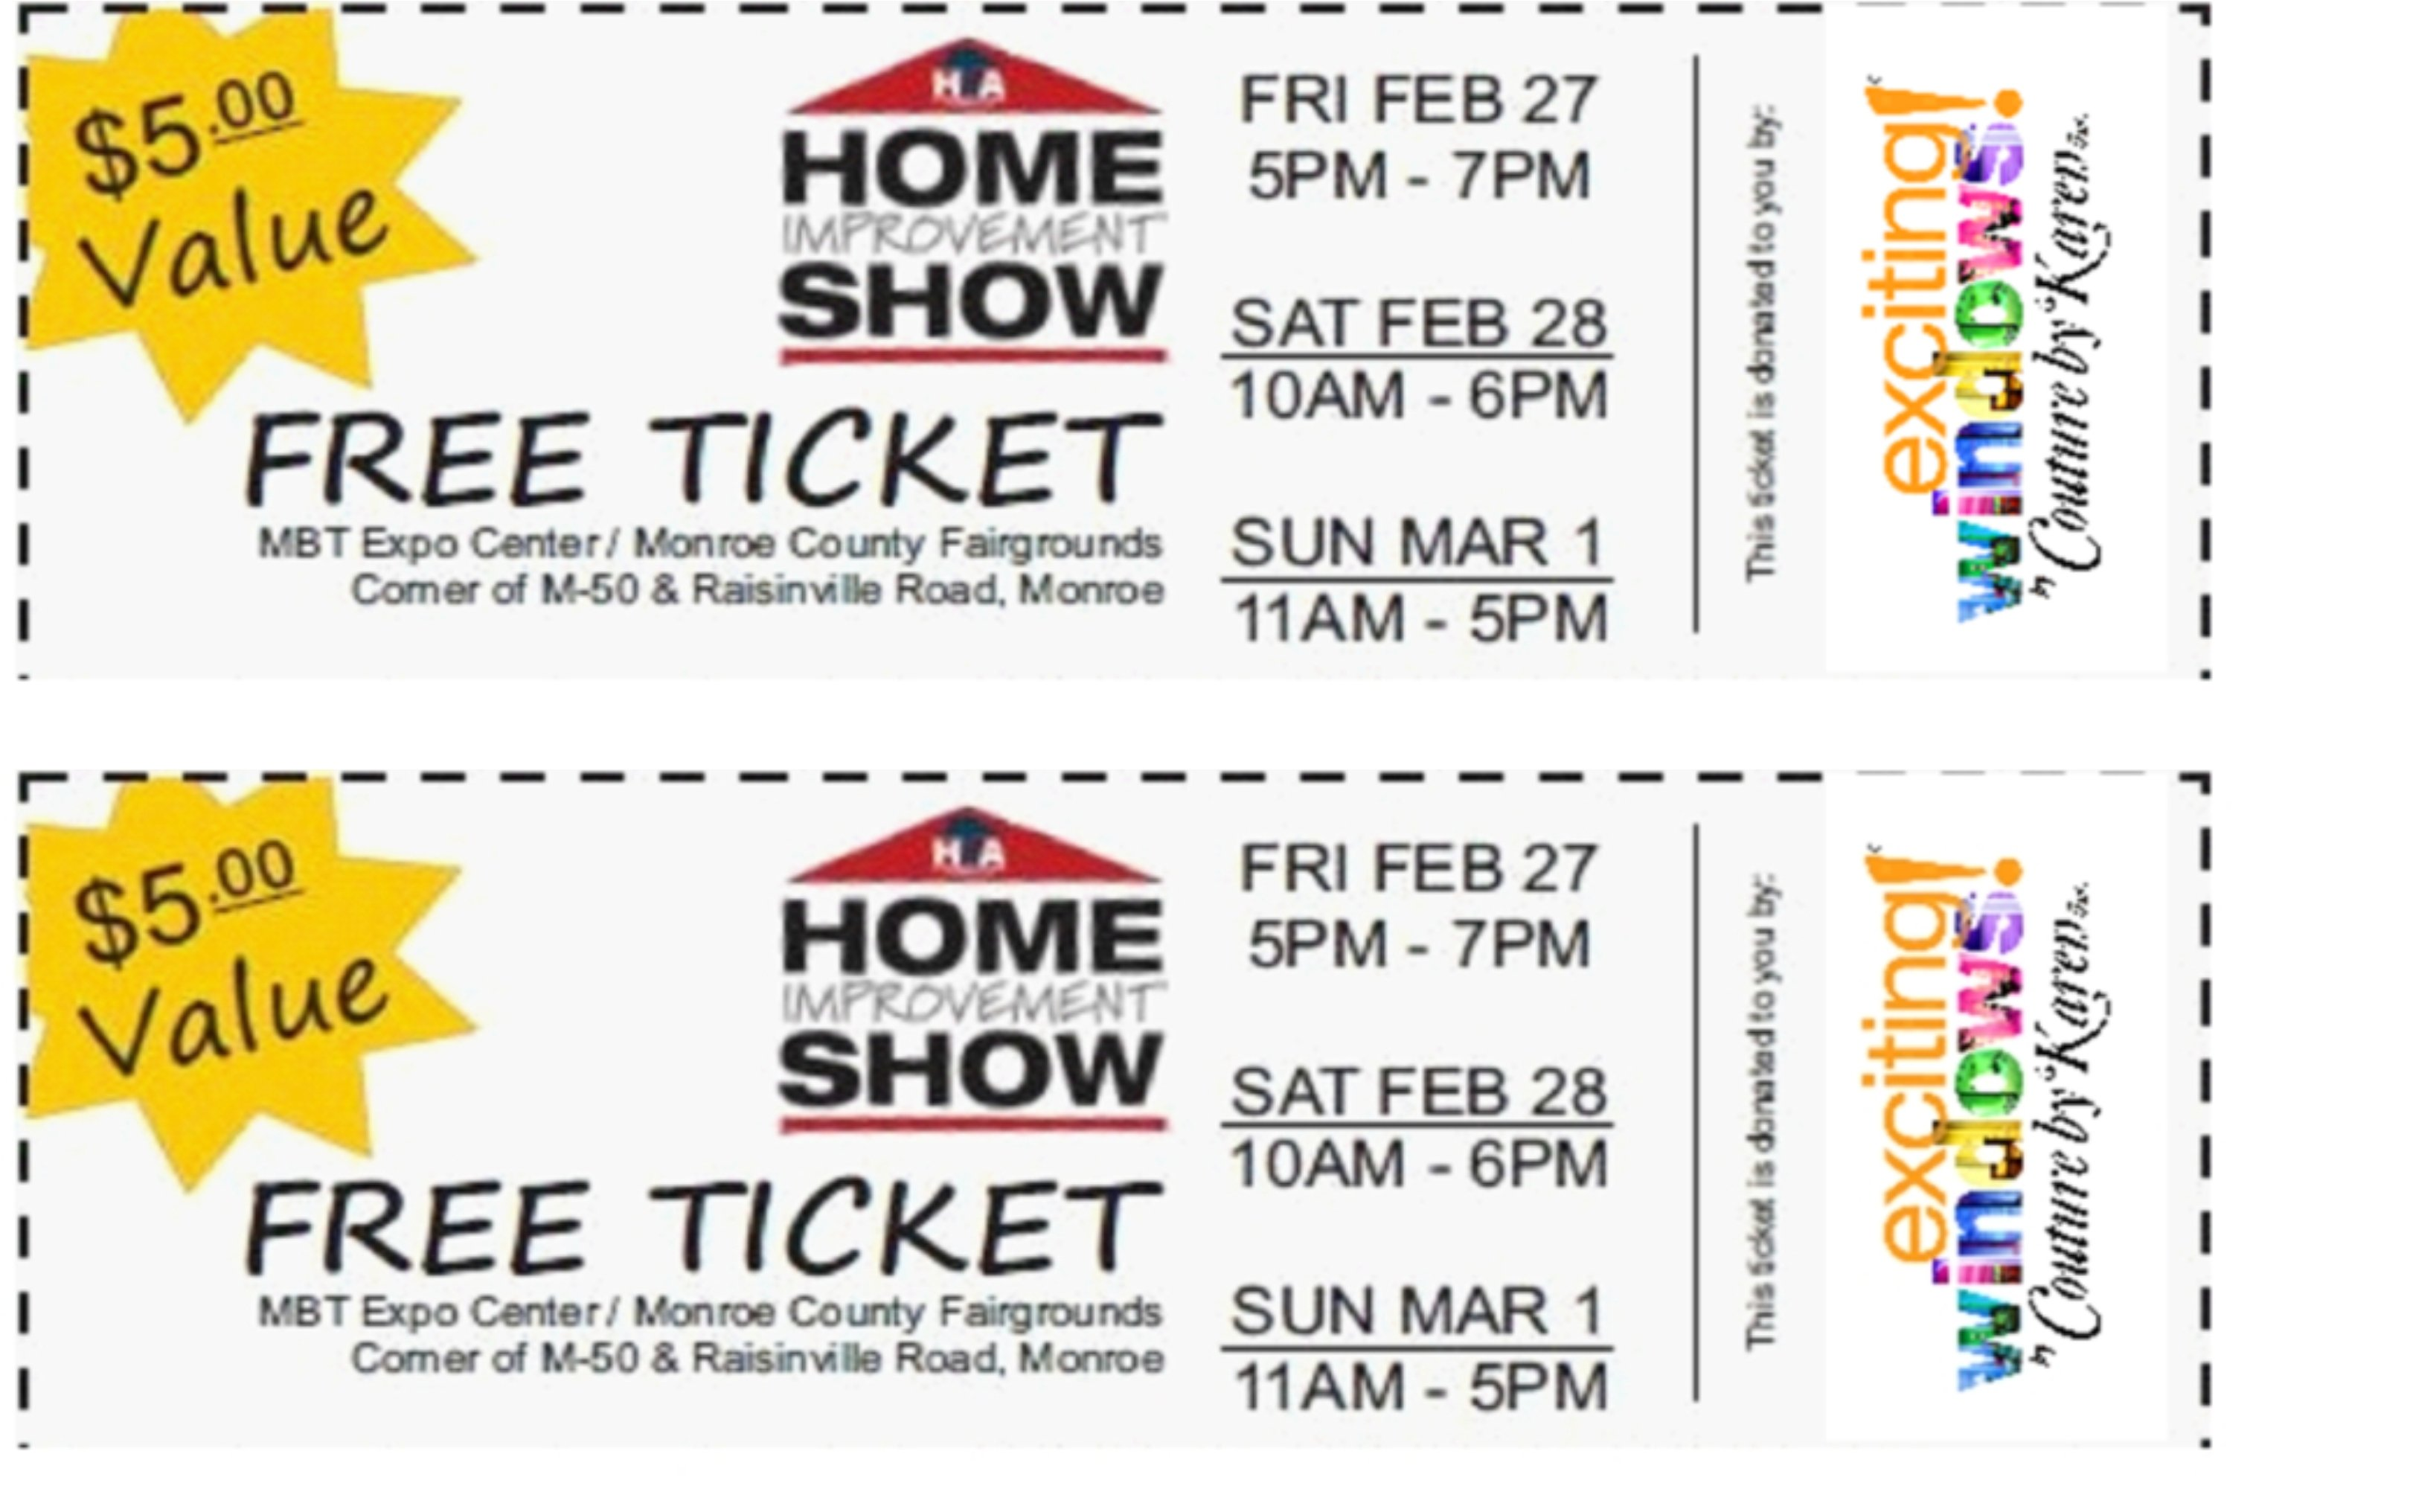 Home Design And Remodeling Show Tickets Come See Us The Kansas City Star Deals And Coupons